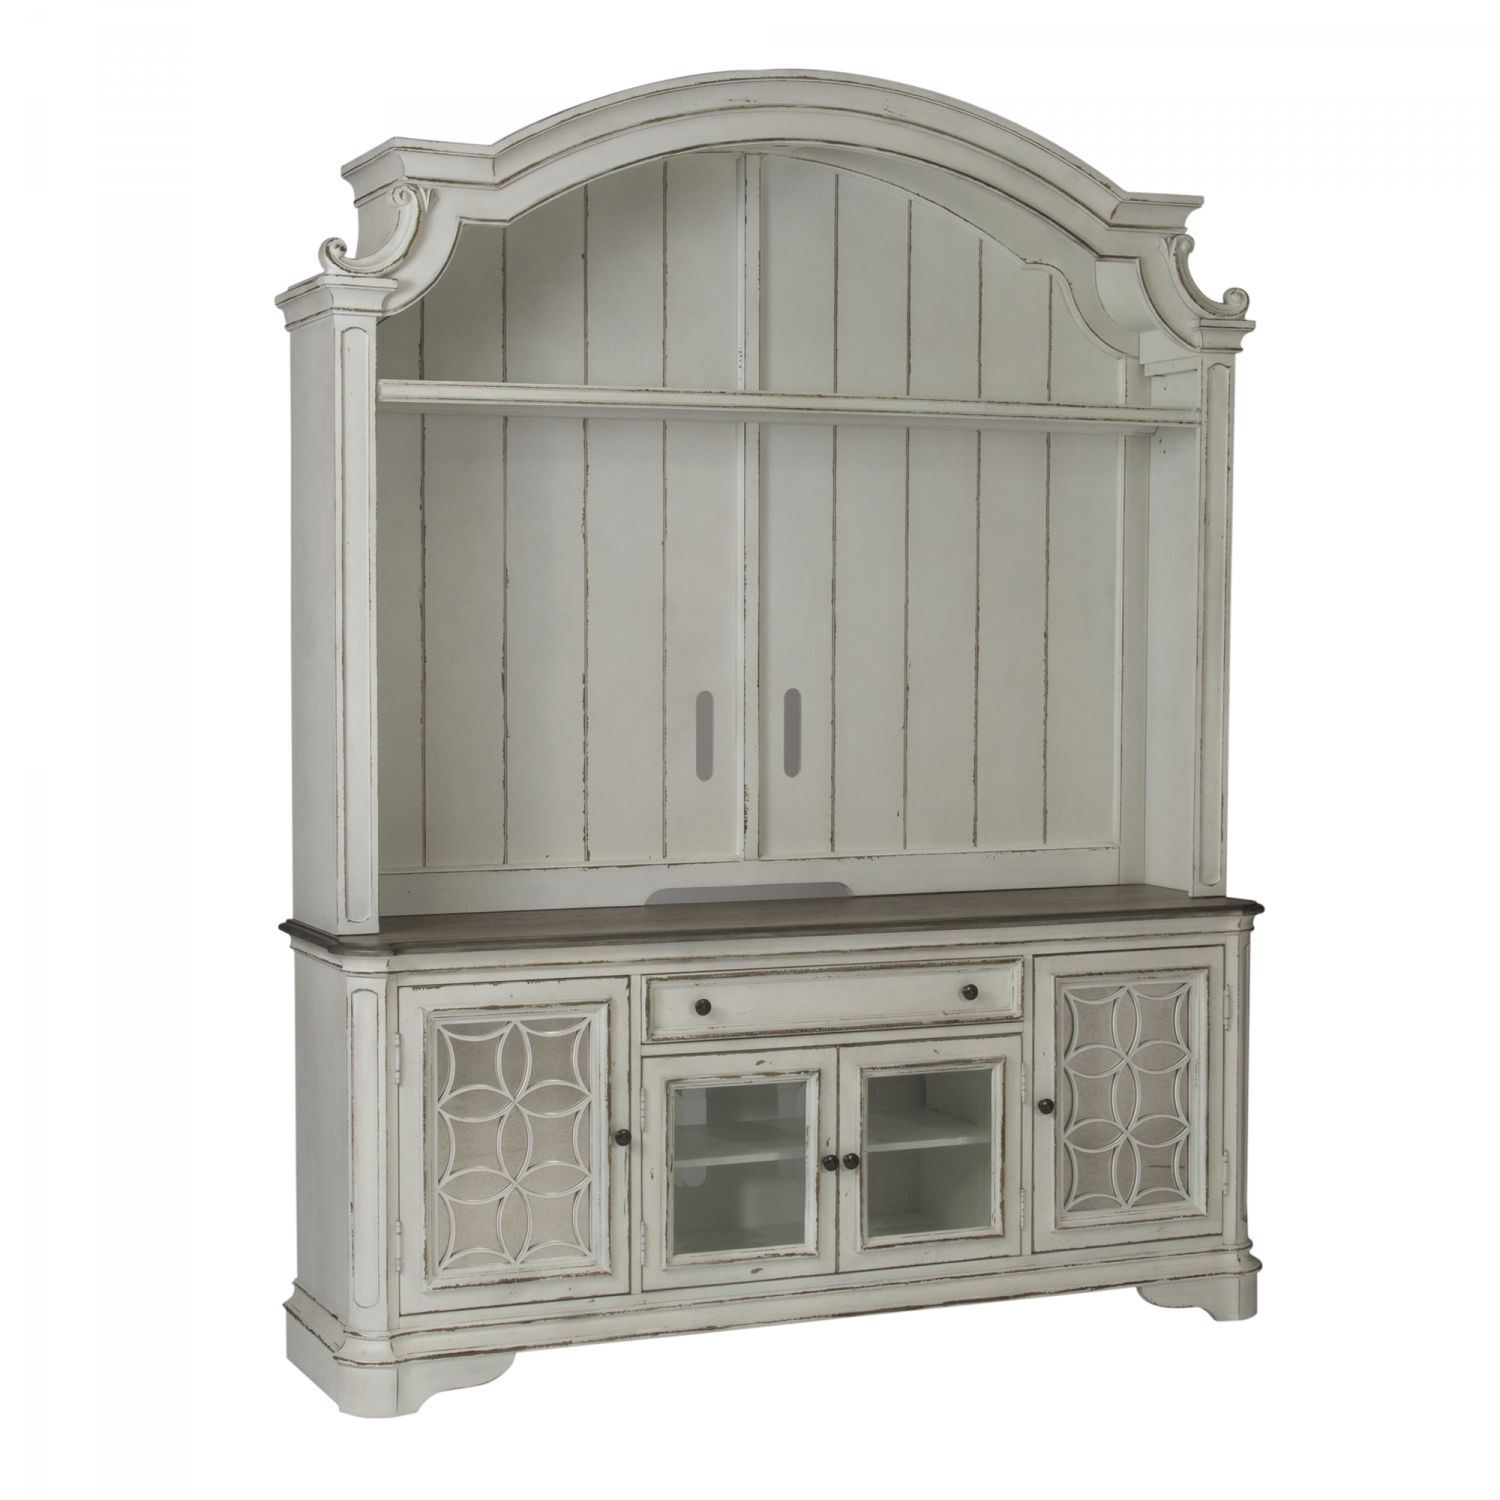 Picture of Magnolia Manor TV Stand